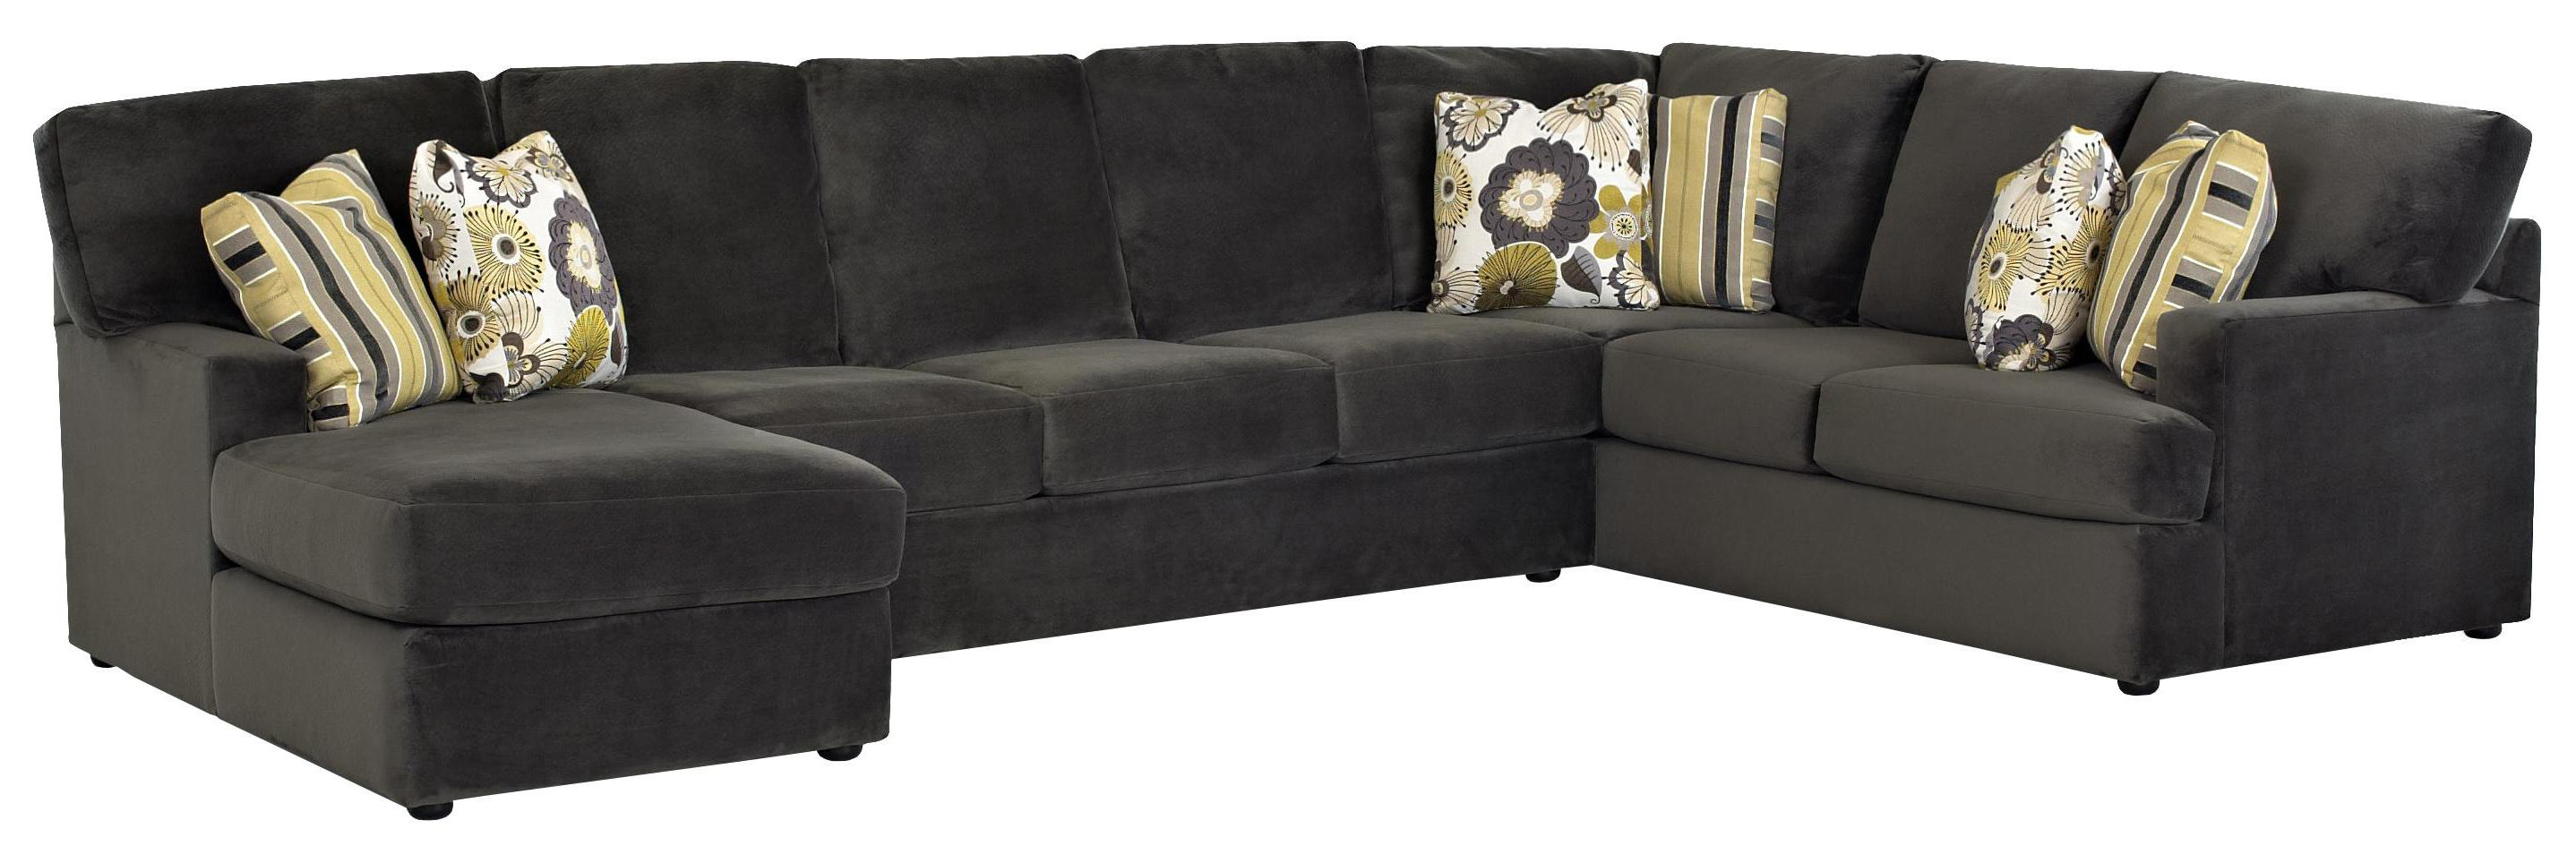 Sectional Sofa With Left Side Chaise By Klaussner Wolf